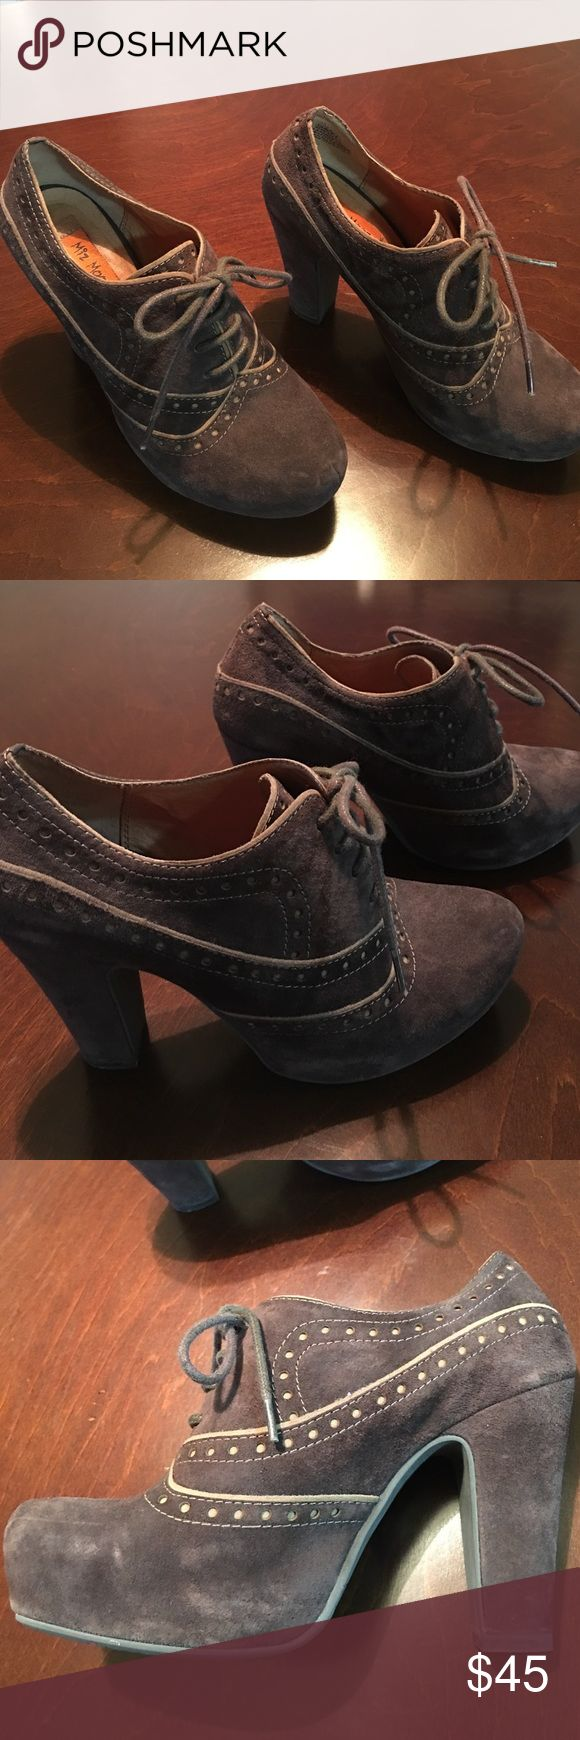 "NEW🎉Miss Mooz Suede Oxfords BRAND NEW Miss Mooz Brown Suede Oxfords. Never worn.  Beautiful detail and great looking shoes!  4"" heel with 1"" platform. Miz Mooz Shoes"